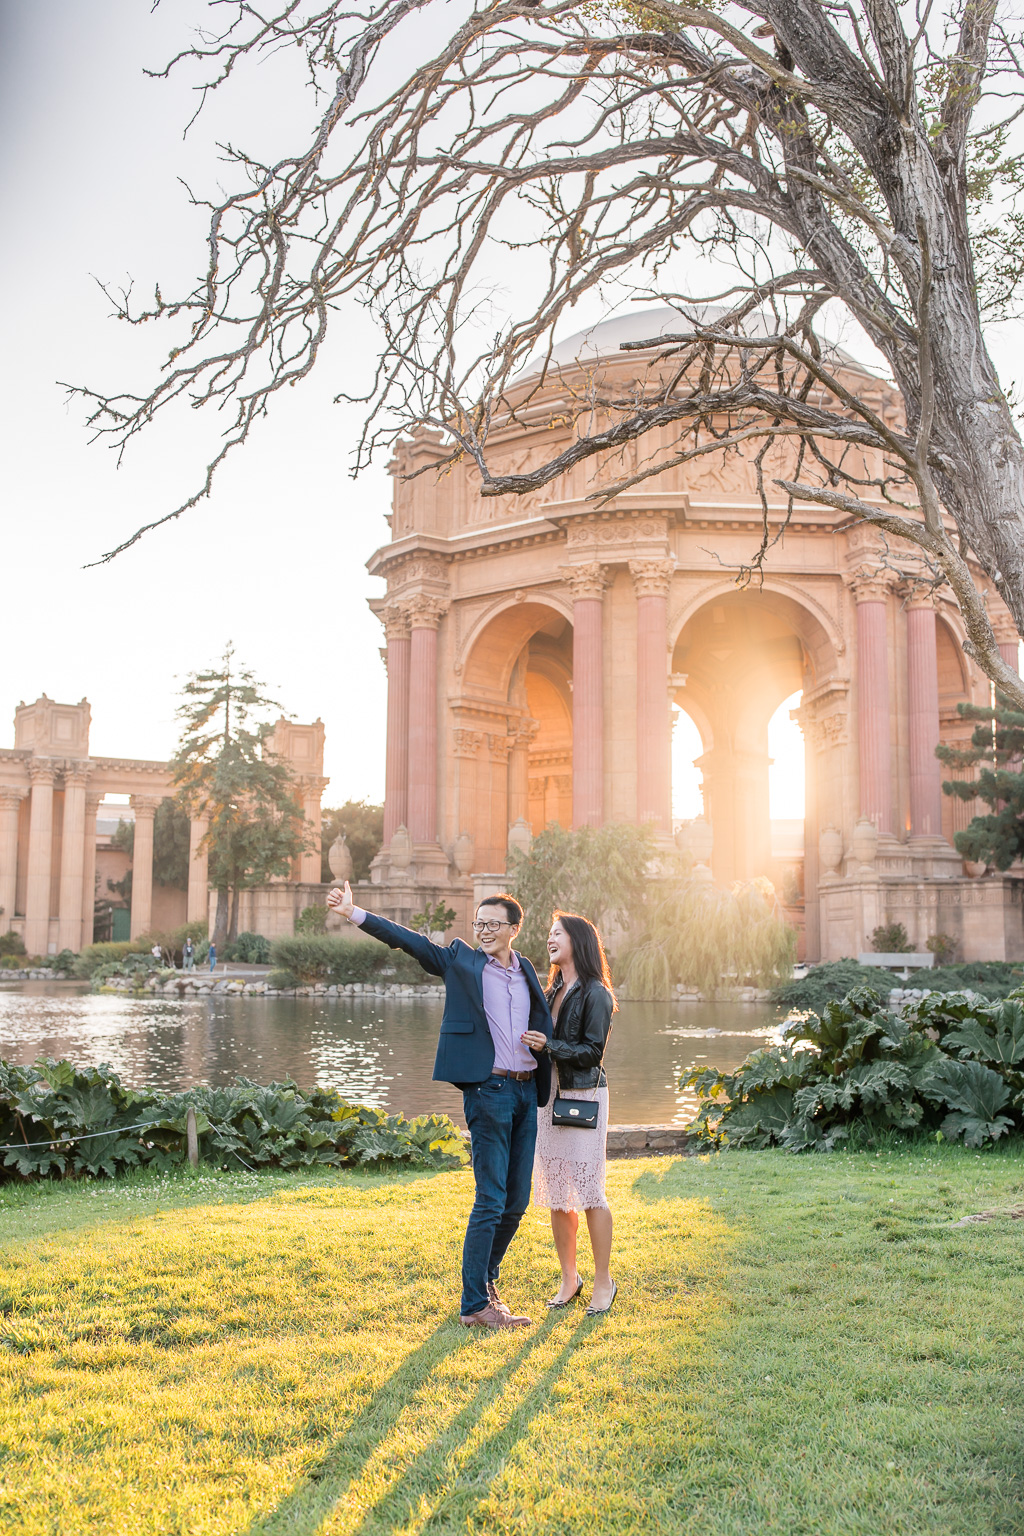 she said yes to his proposal in front of the Palace of Fine Arts dome